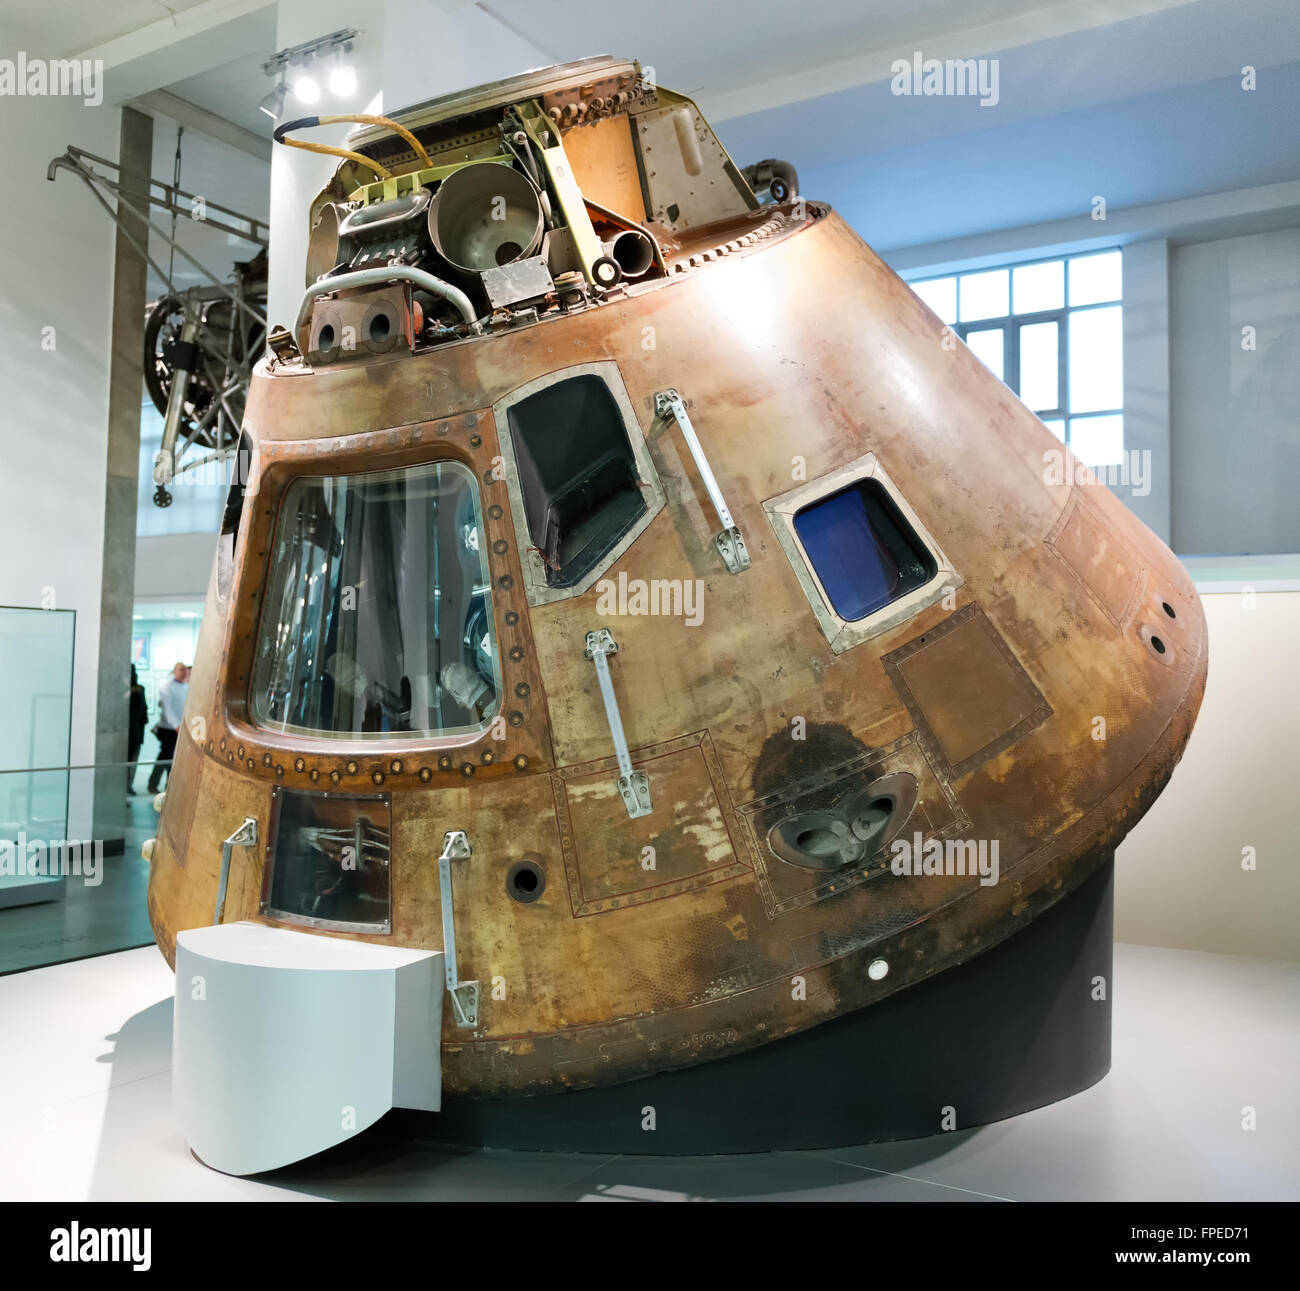 Old 1960s United States space exploration capsule known as Apollo 10 space capsule with view inside on display inside - Stock Image